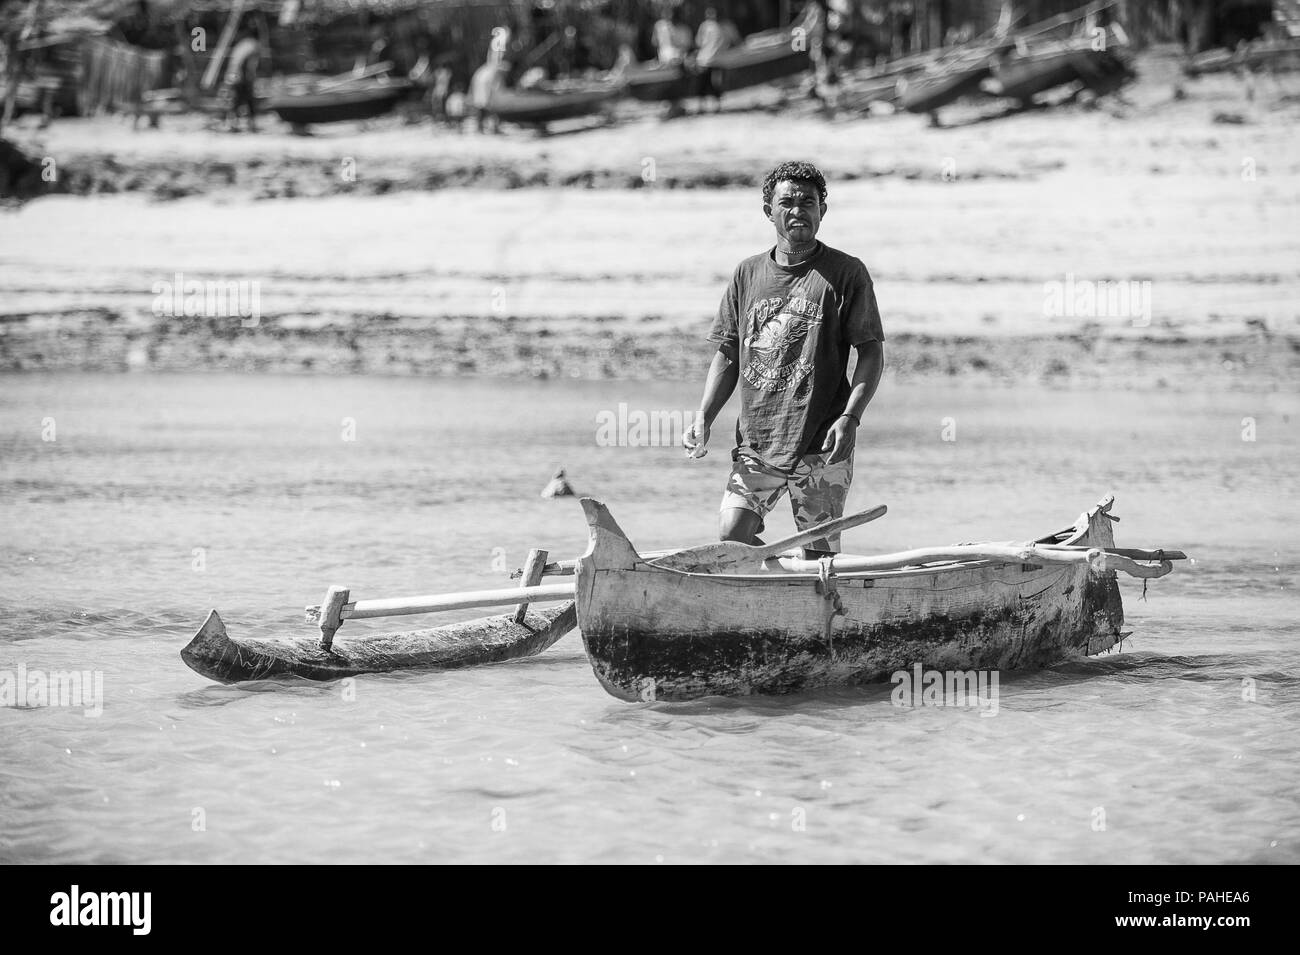 ANTANANARIVO, MADAGASCAR - JULY 3, 2011: Unidentified Madagascar man with a small boat. People in Madagascar suffer of poverty due to slow development - Stock Image